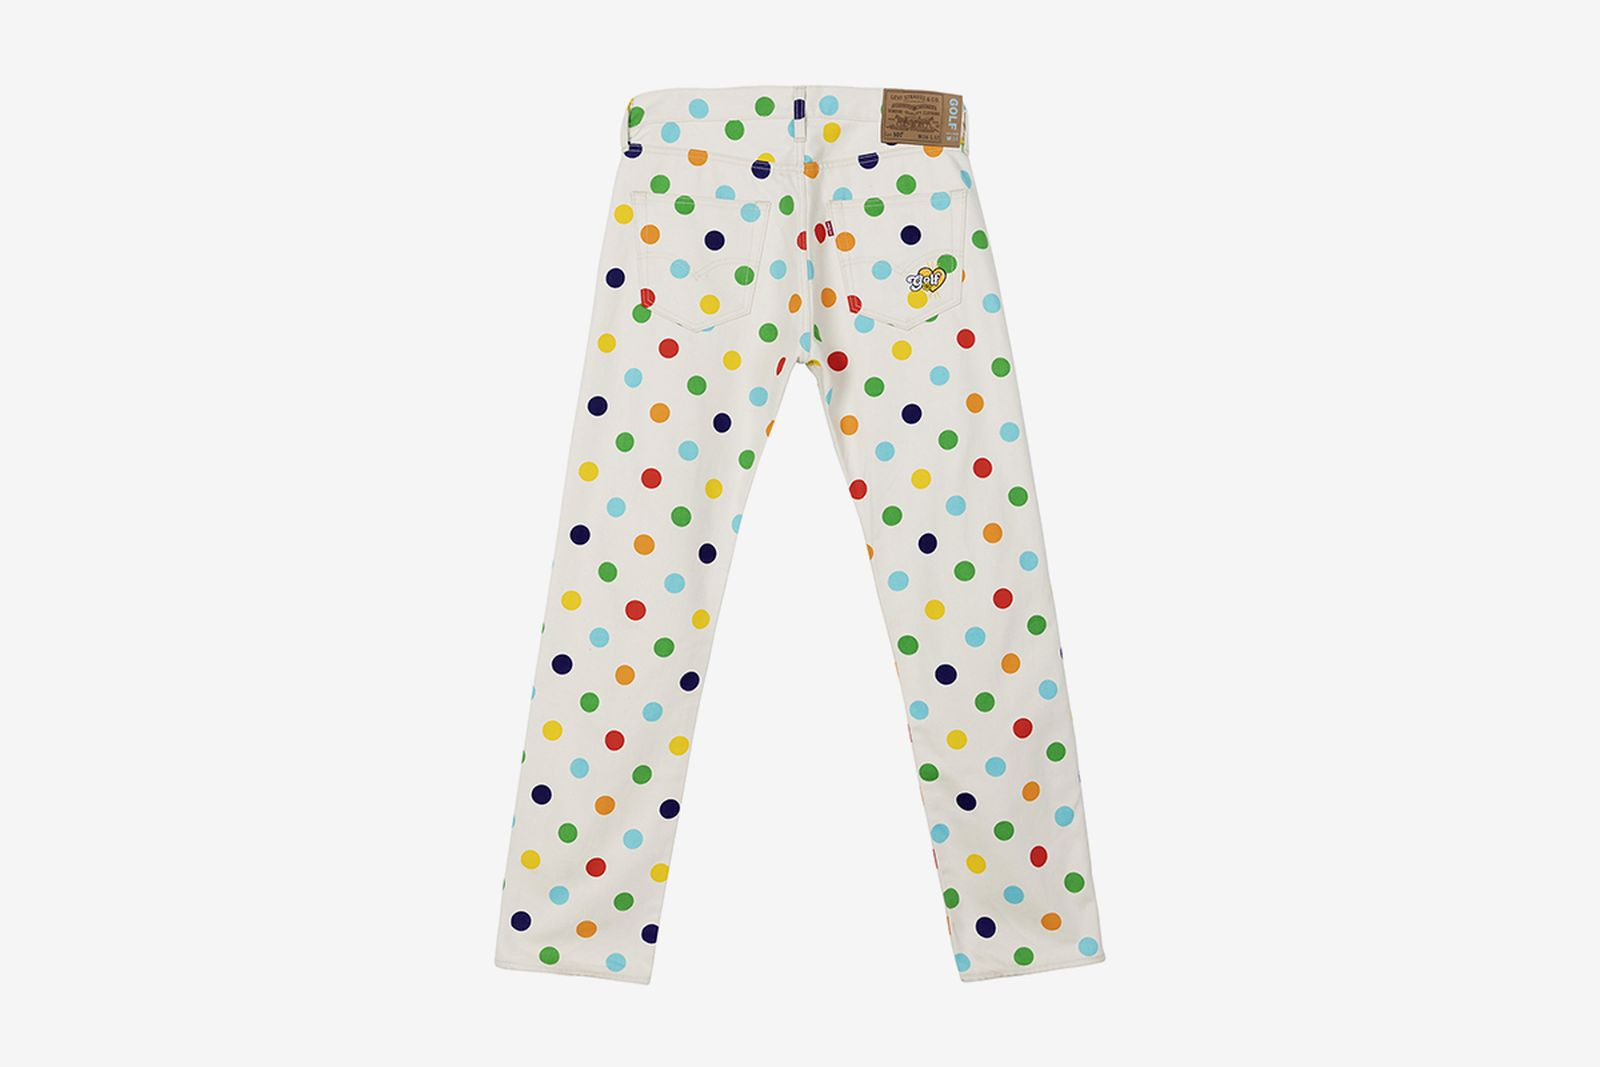 Levi's GOLF WANG jeans